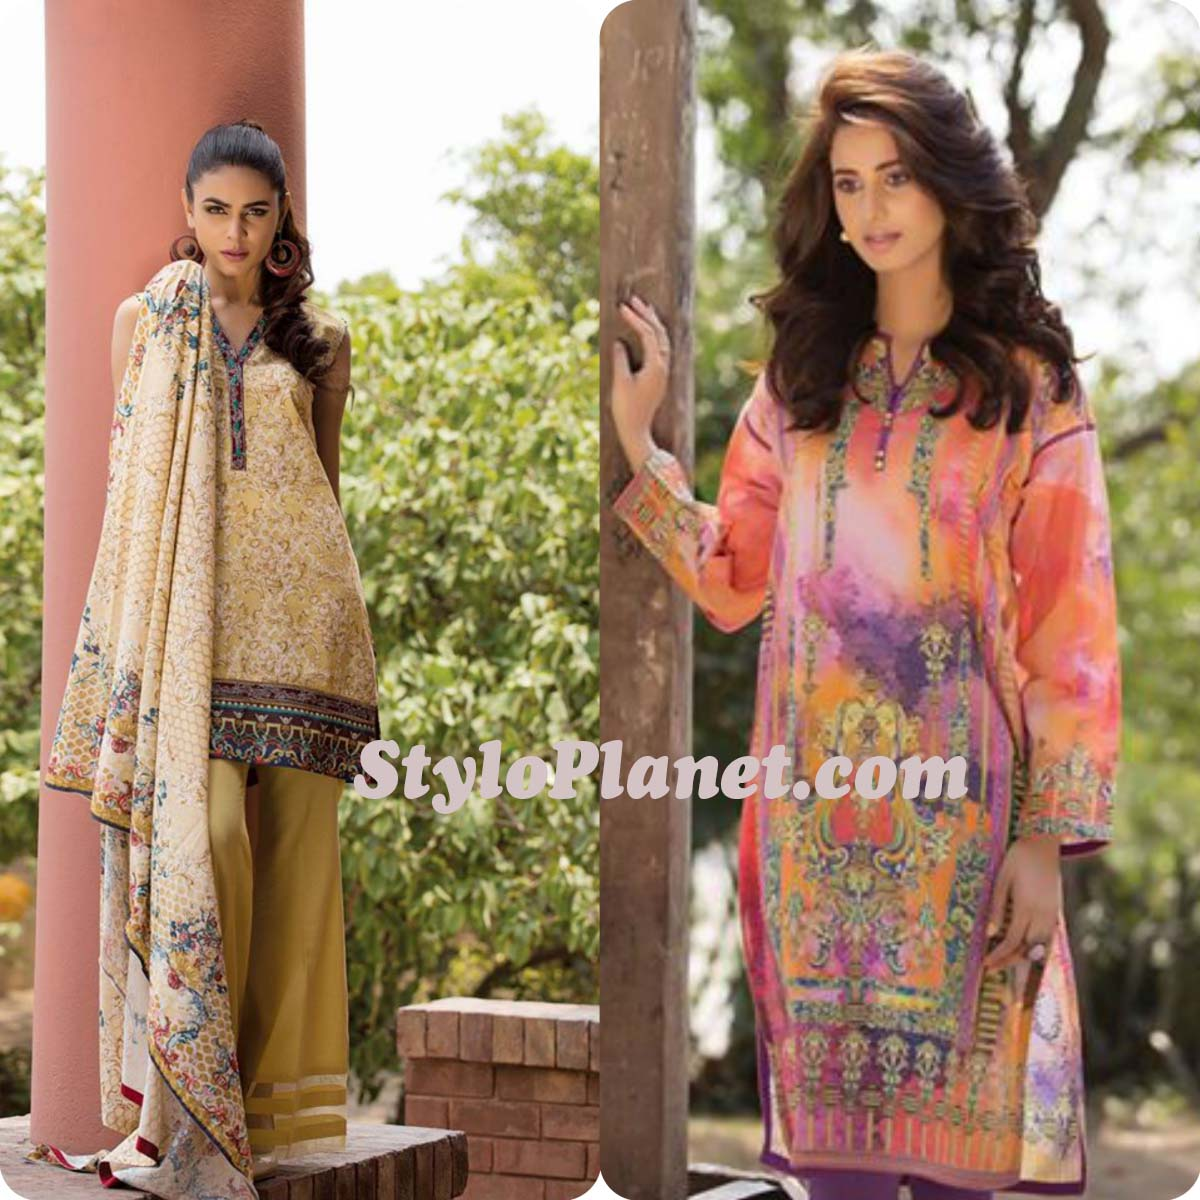 Kayseria New Eid-Ul-Adha Collection for Women 2016-2017 (4)